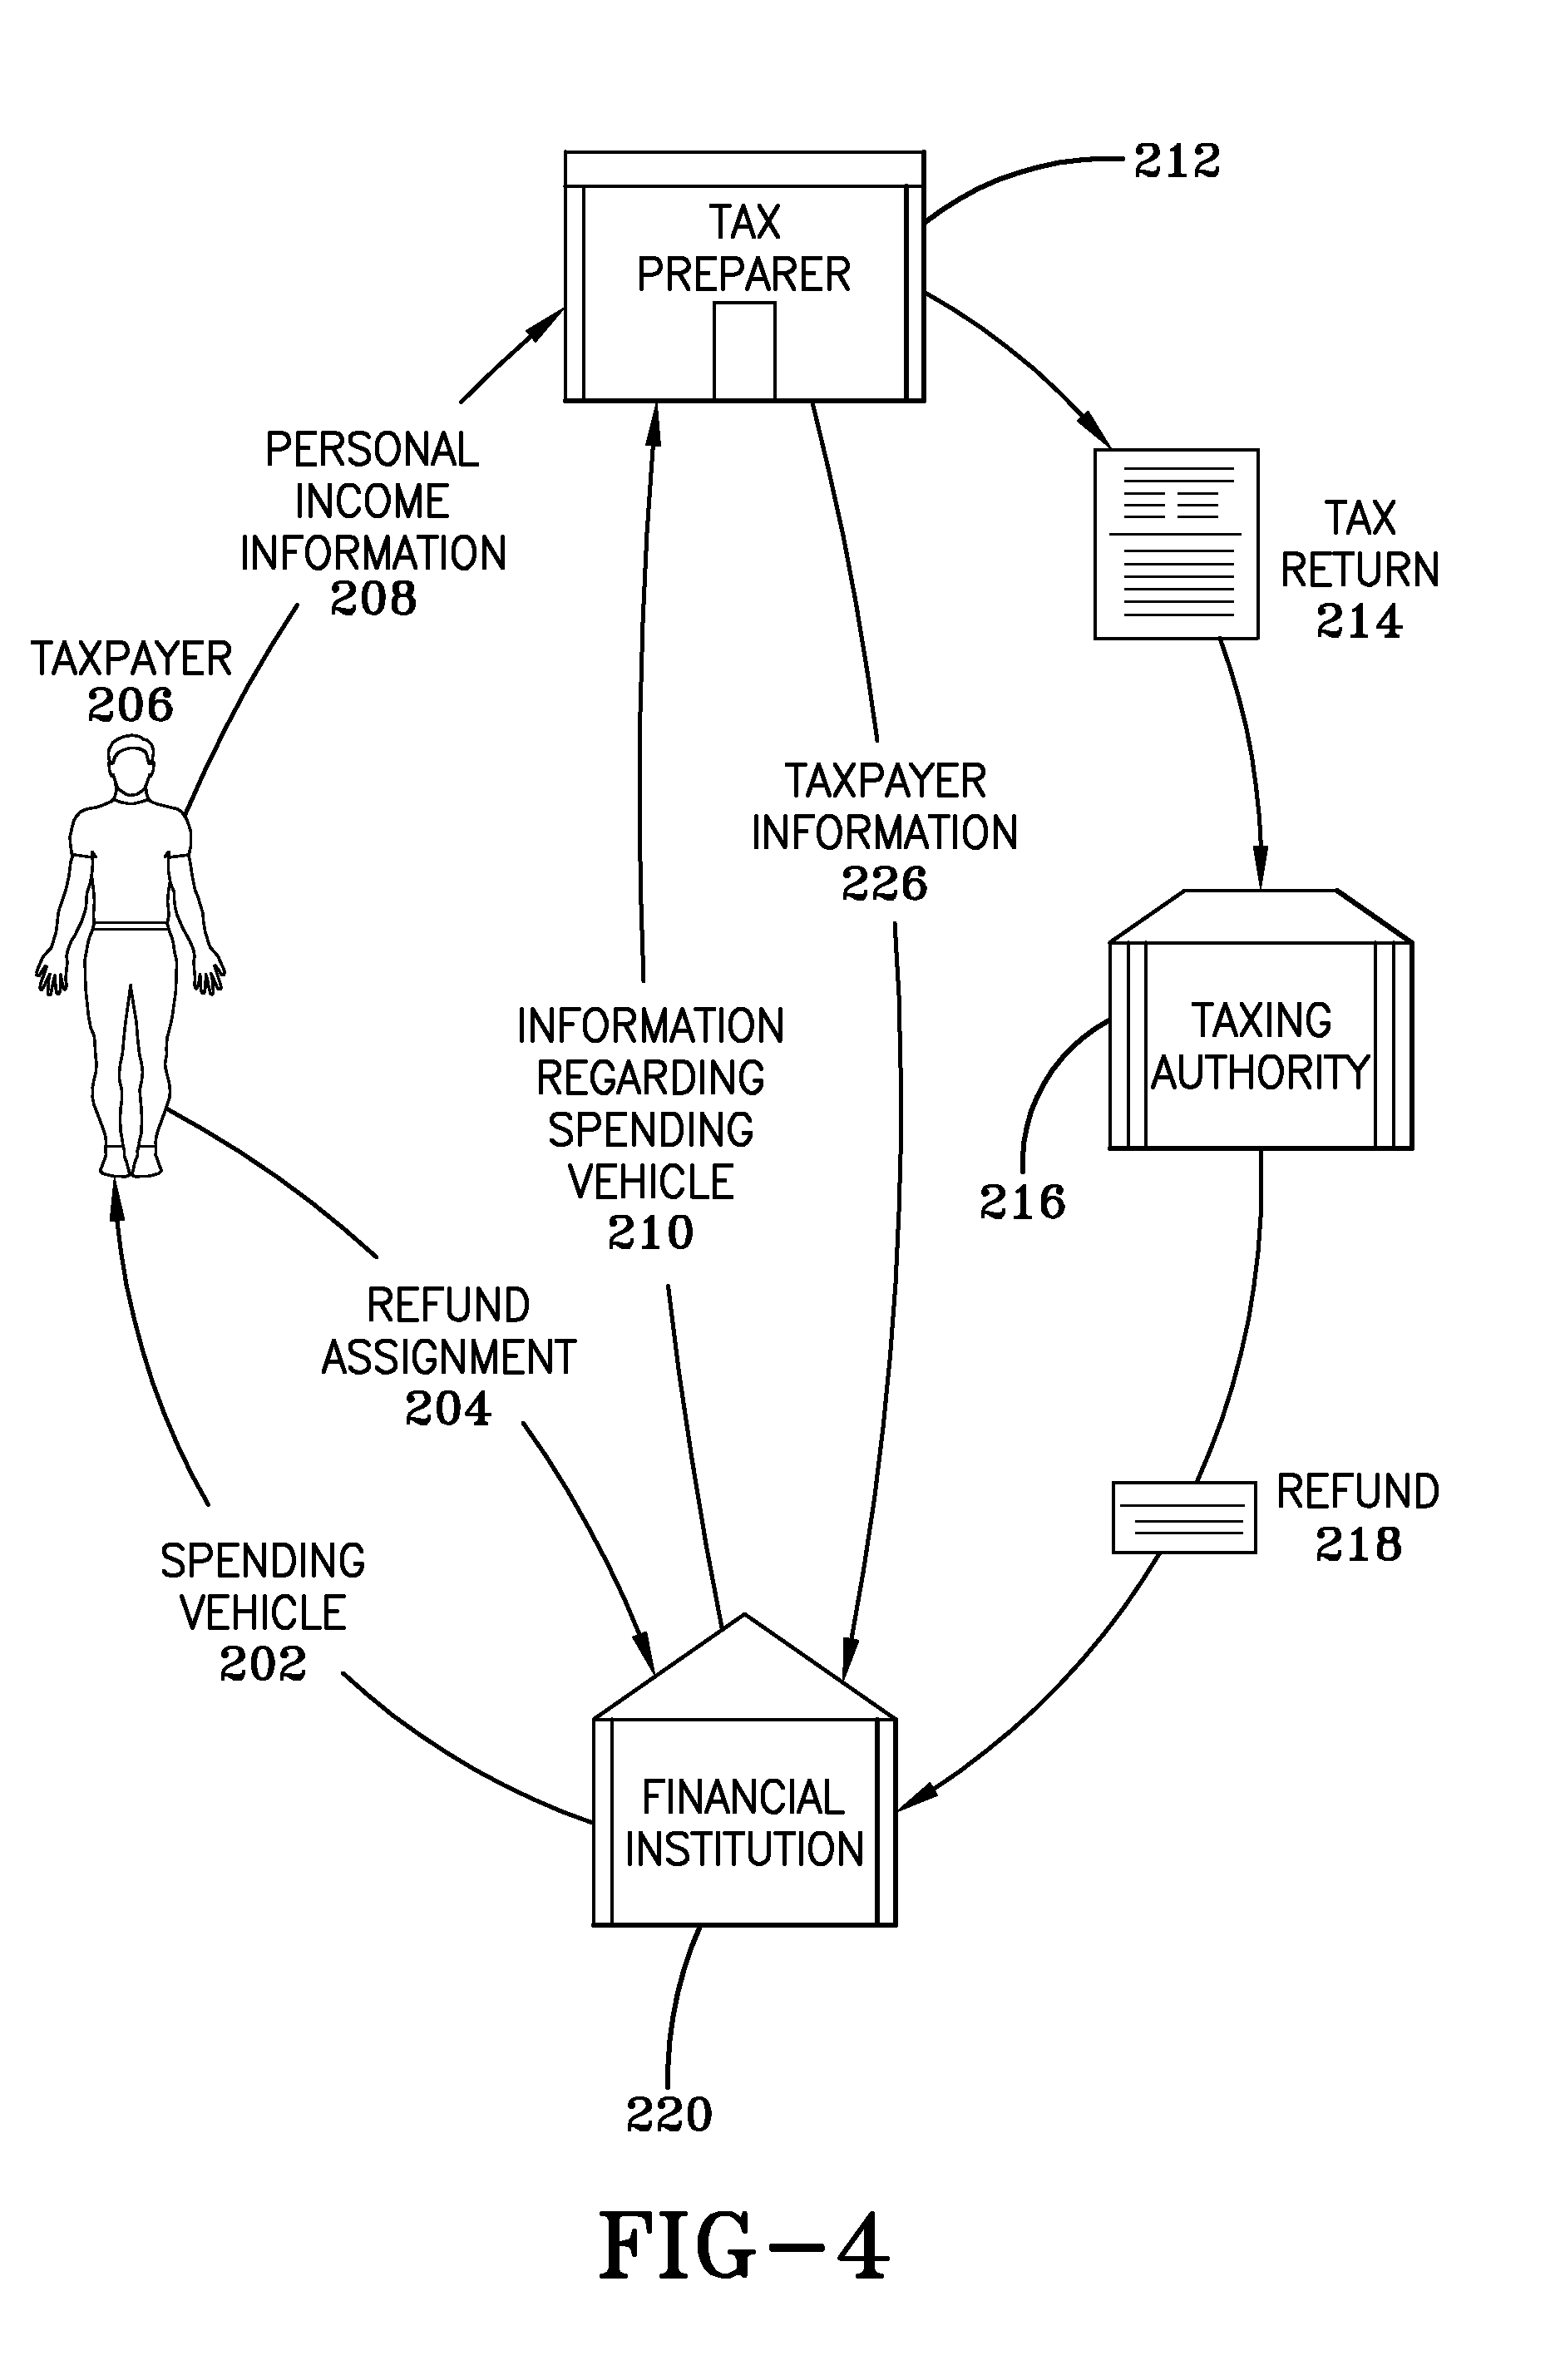 System of tax